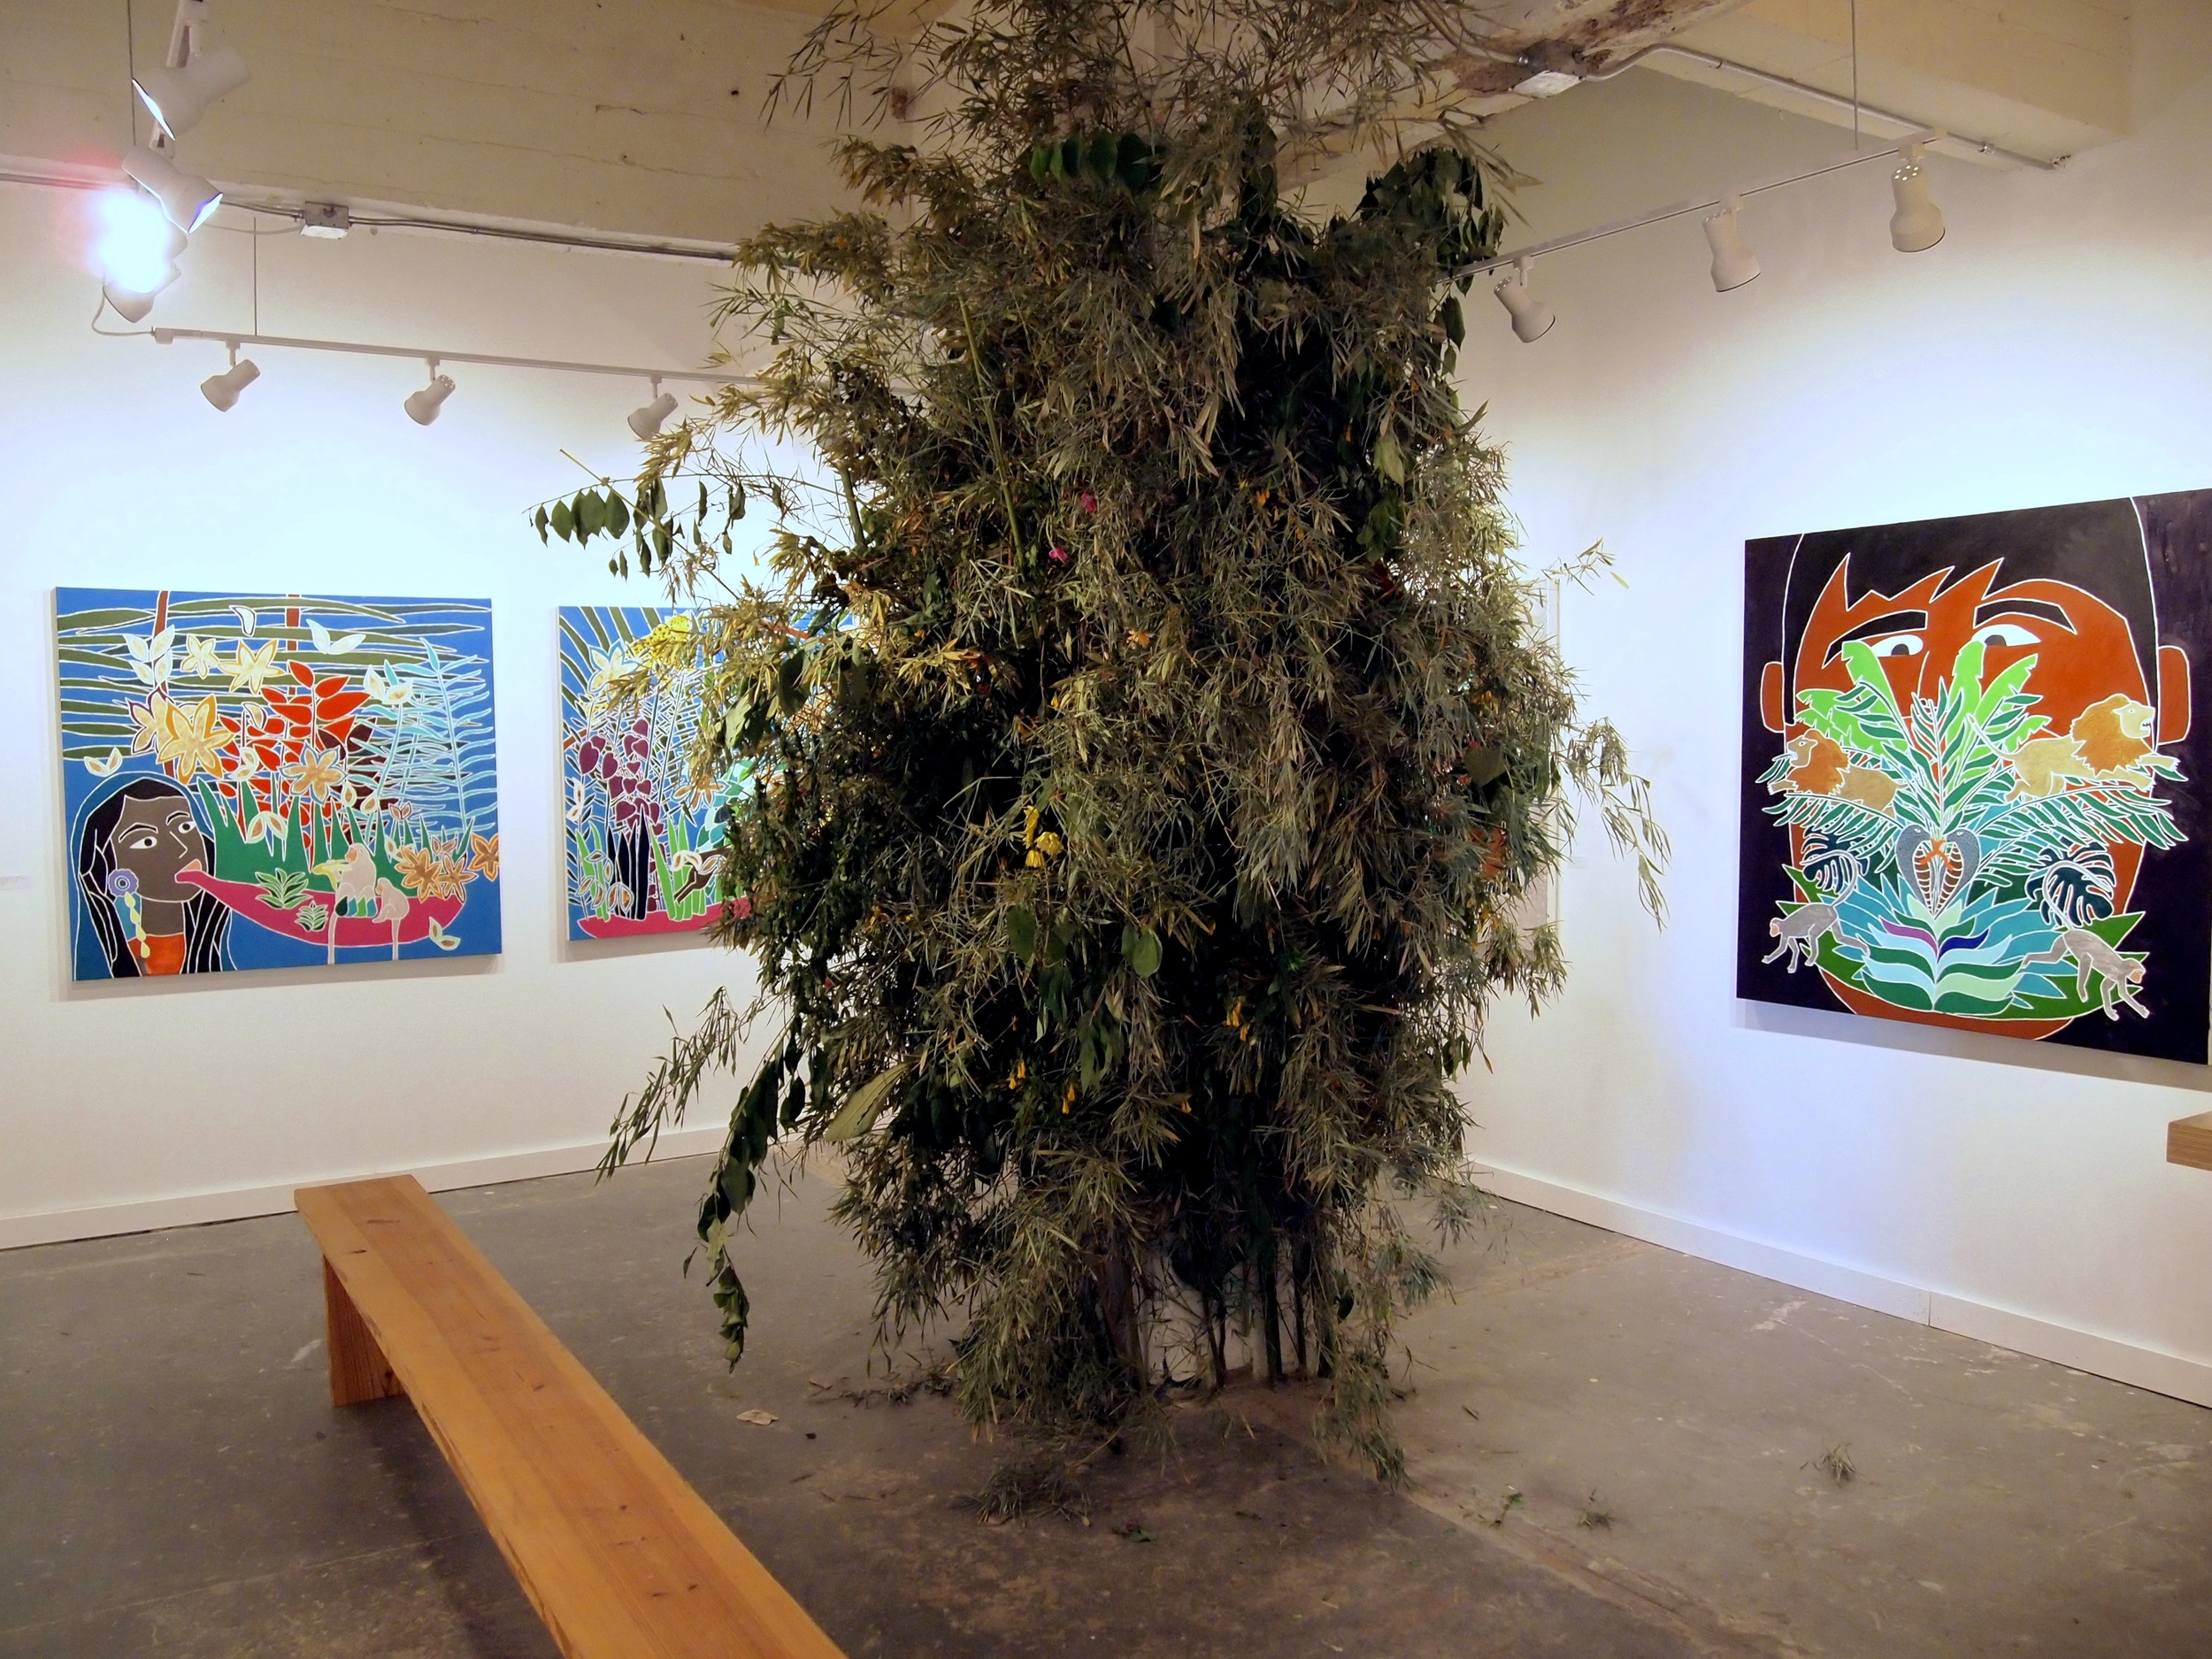 Installation view at Hello Studio, San Antonio TX 2013